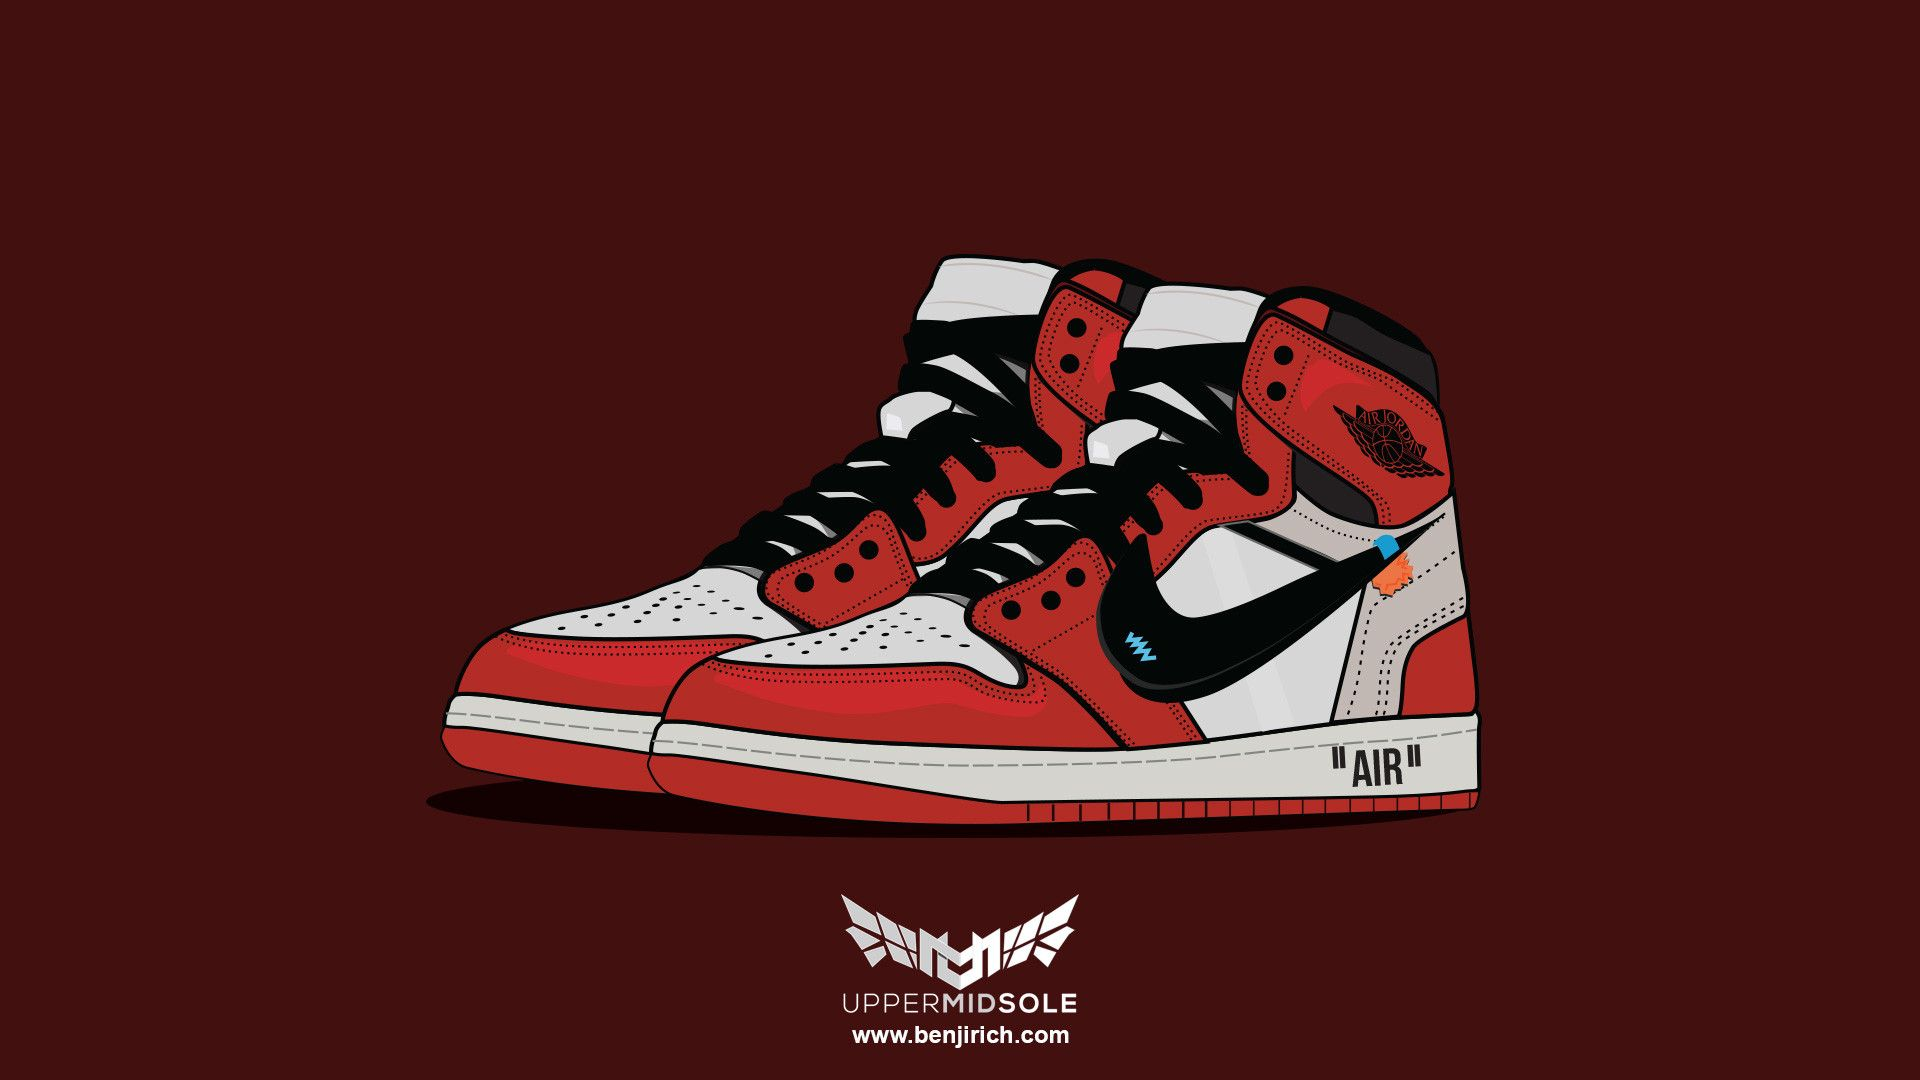 Air Jordan Retro 1 Wallpapers Wallpaper Cave